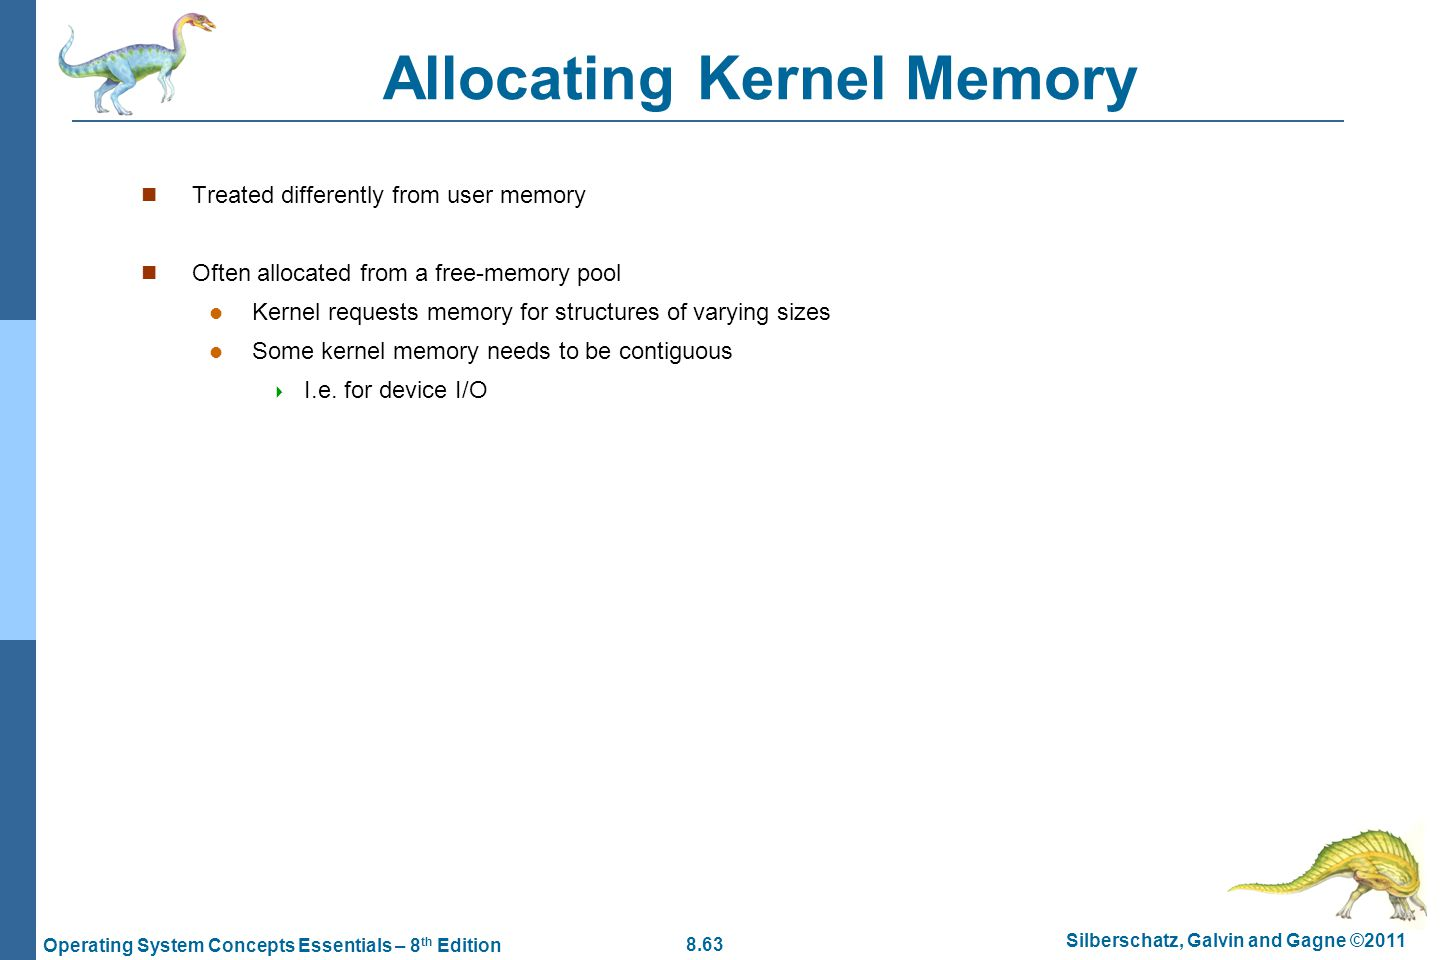 Allocating Kernel Memory